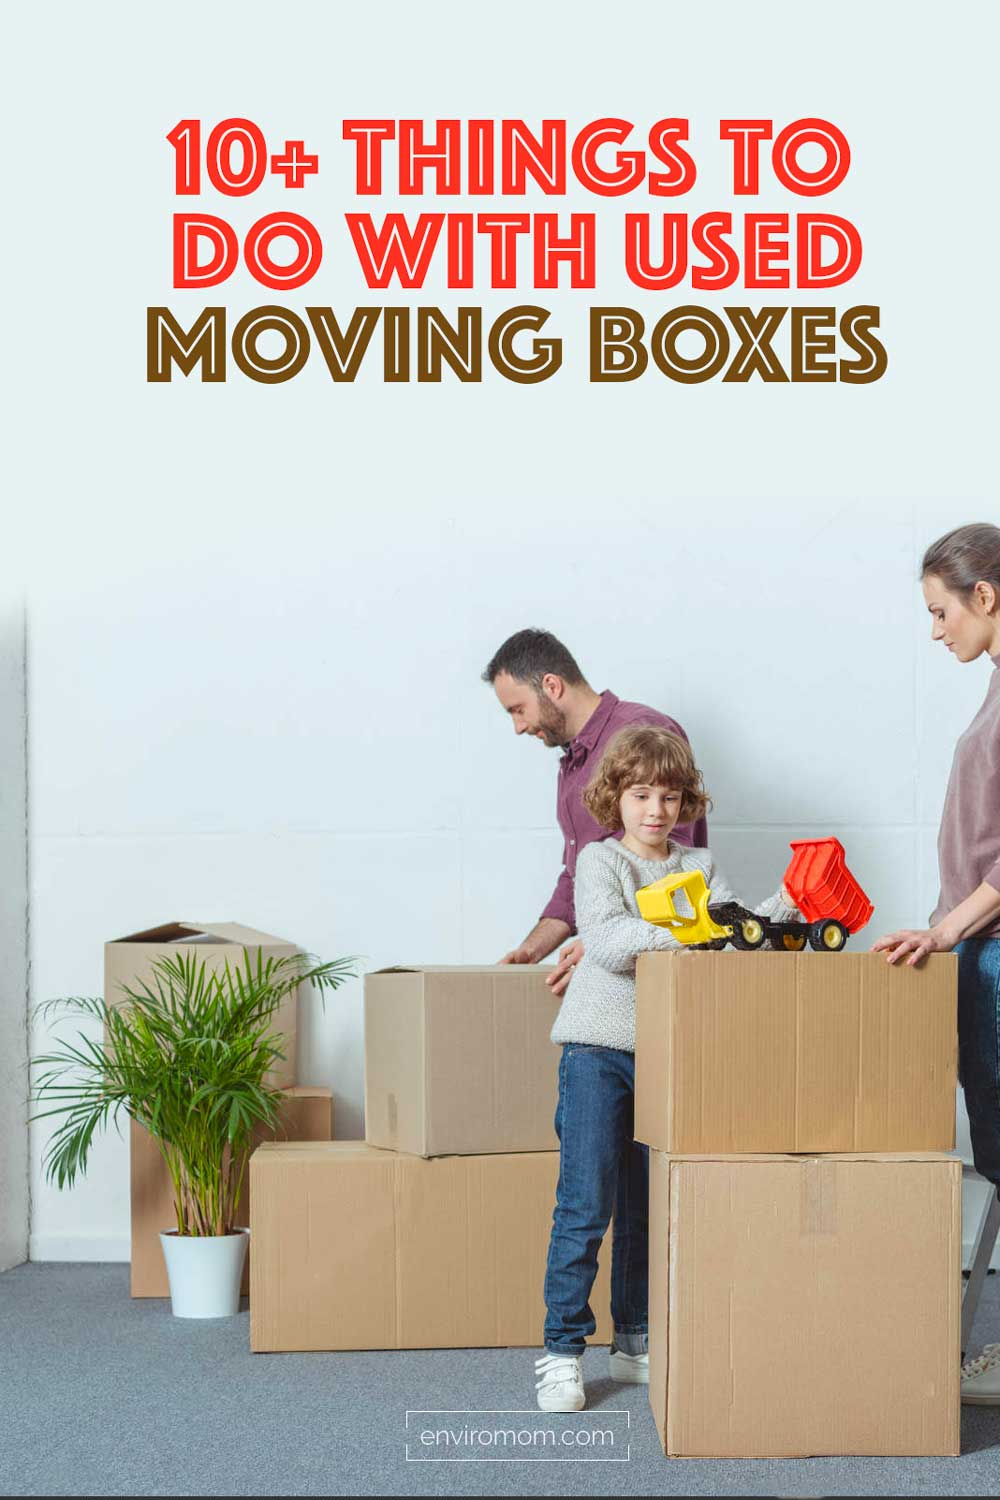 What to do with used moving boxes